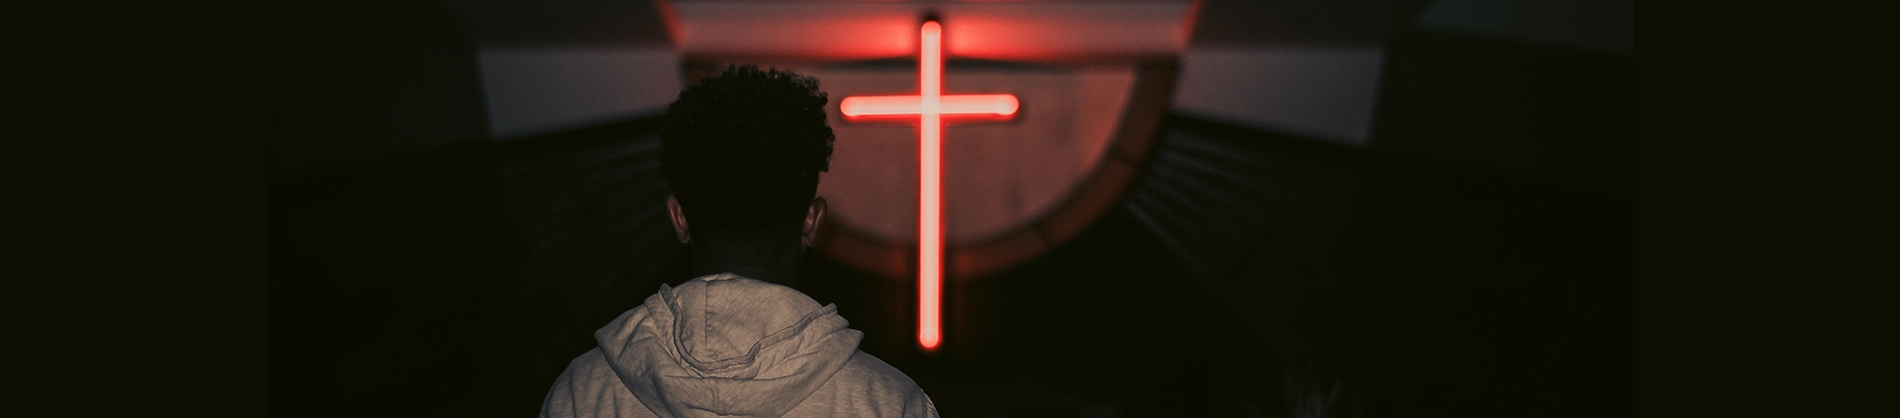 A person looking at a red neon cross on a wall